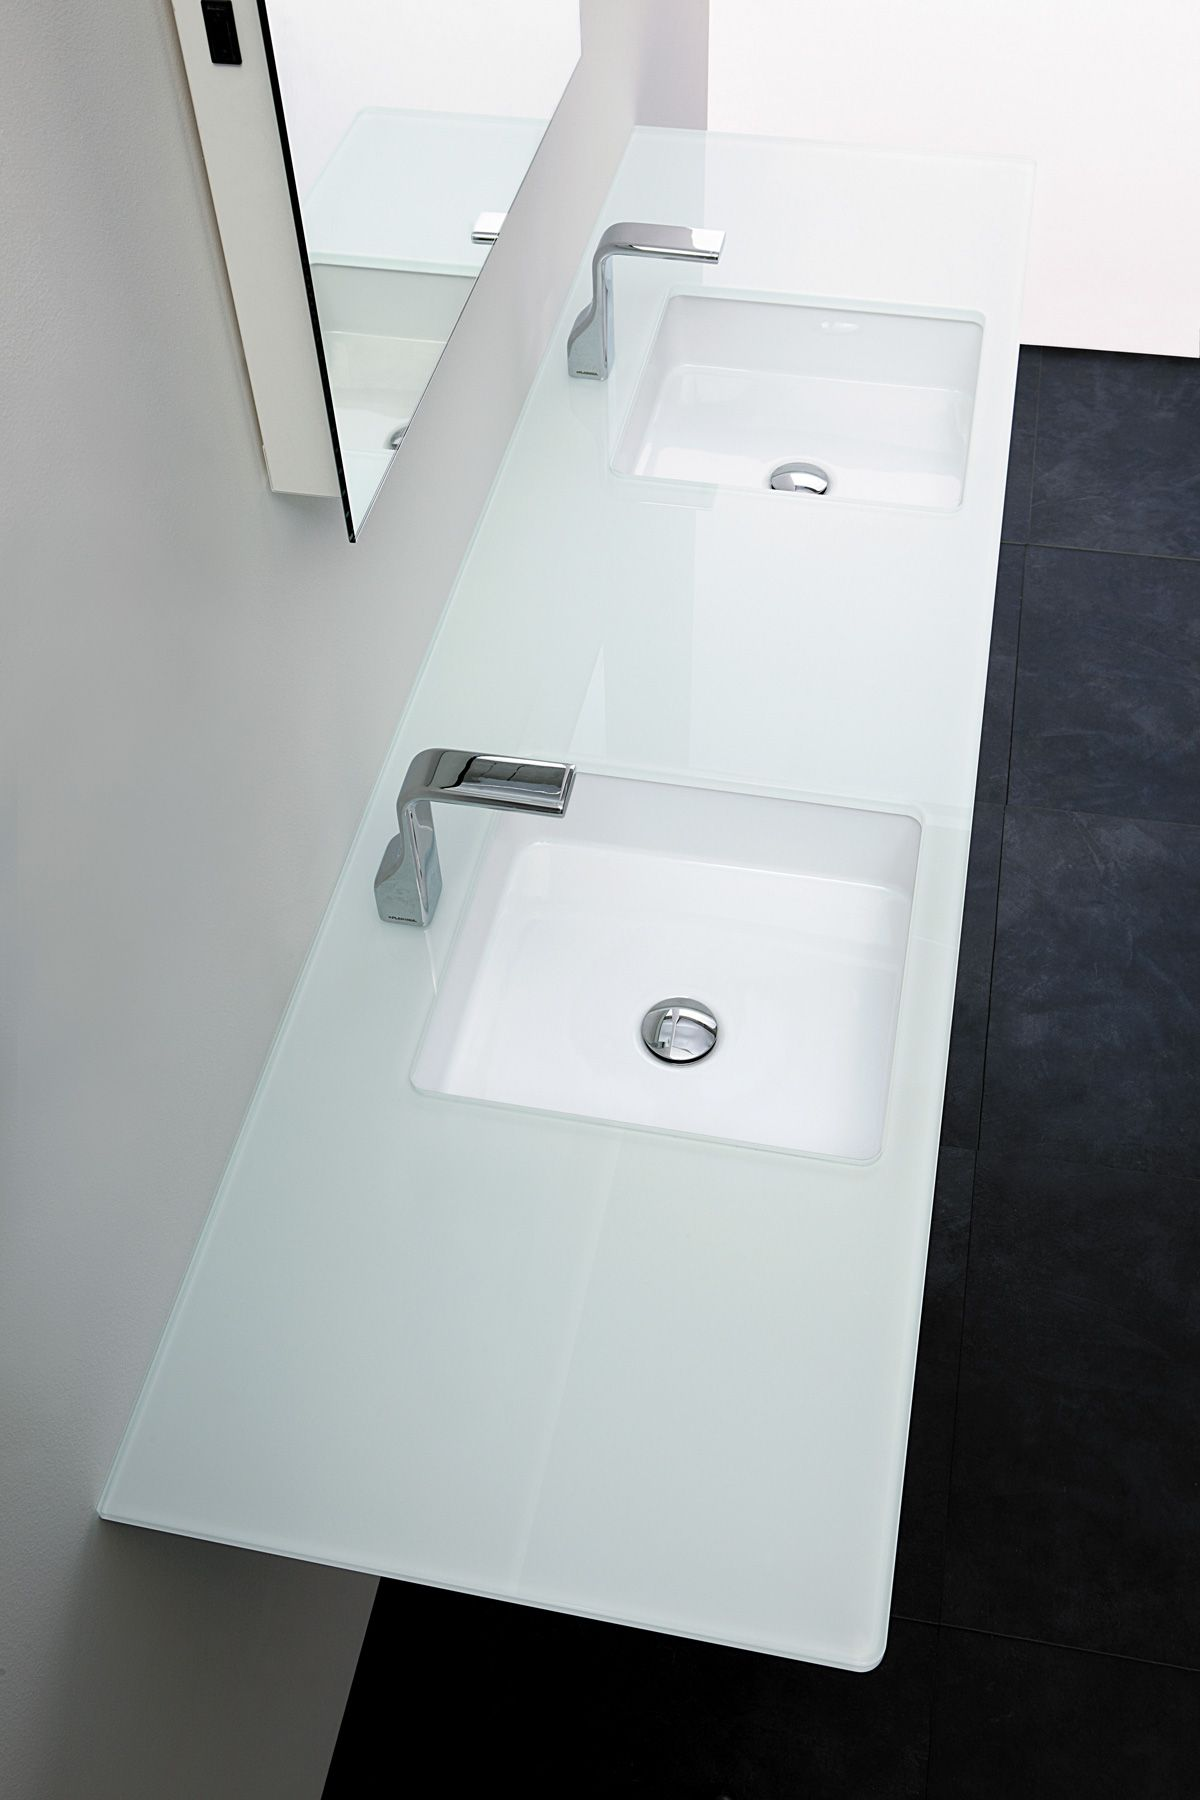 Flaminia Miniwash Fly | arredo bagno | Pinterest | Tops, Products ... - Miniwash is a new collection of basins, bench and wall hung. The rounded  corners lighten the square or rectangular shape of these basins, giving  them an.